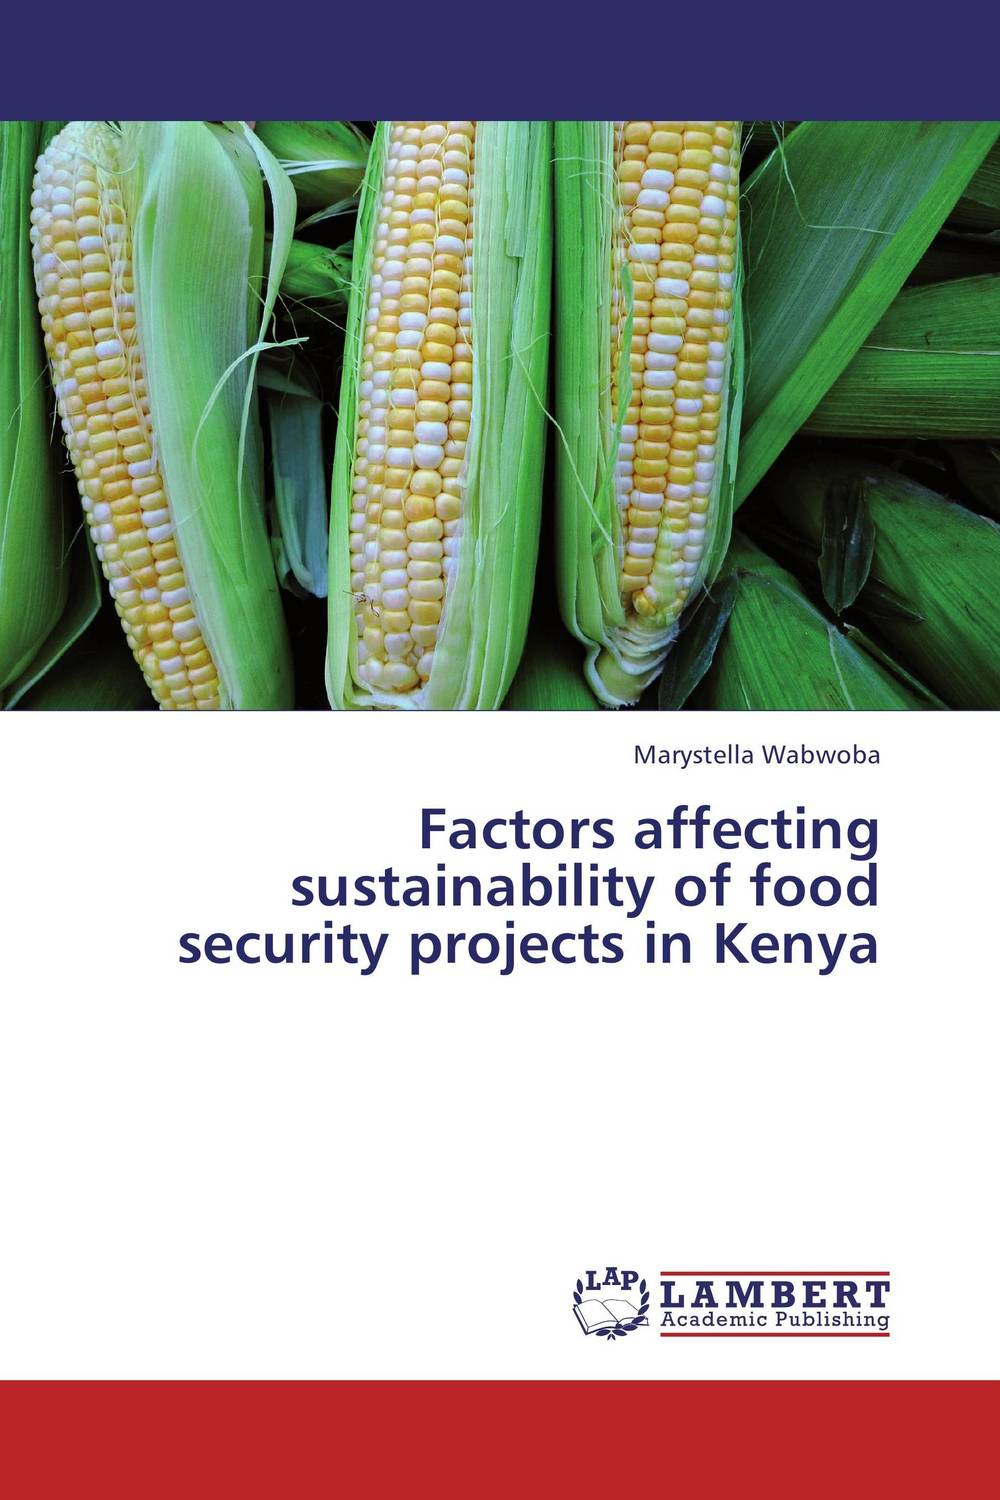 Factors affecting sustainability of food security projects in Kenya